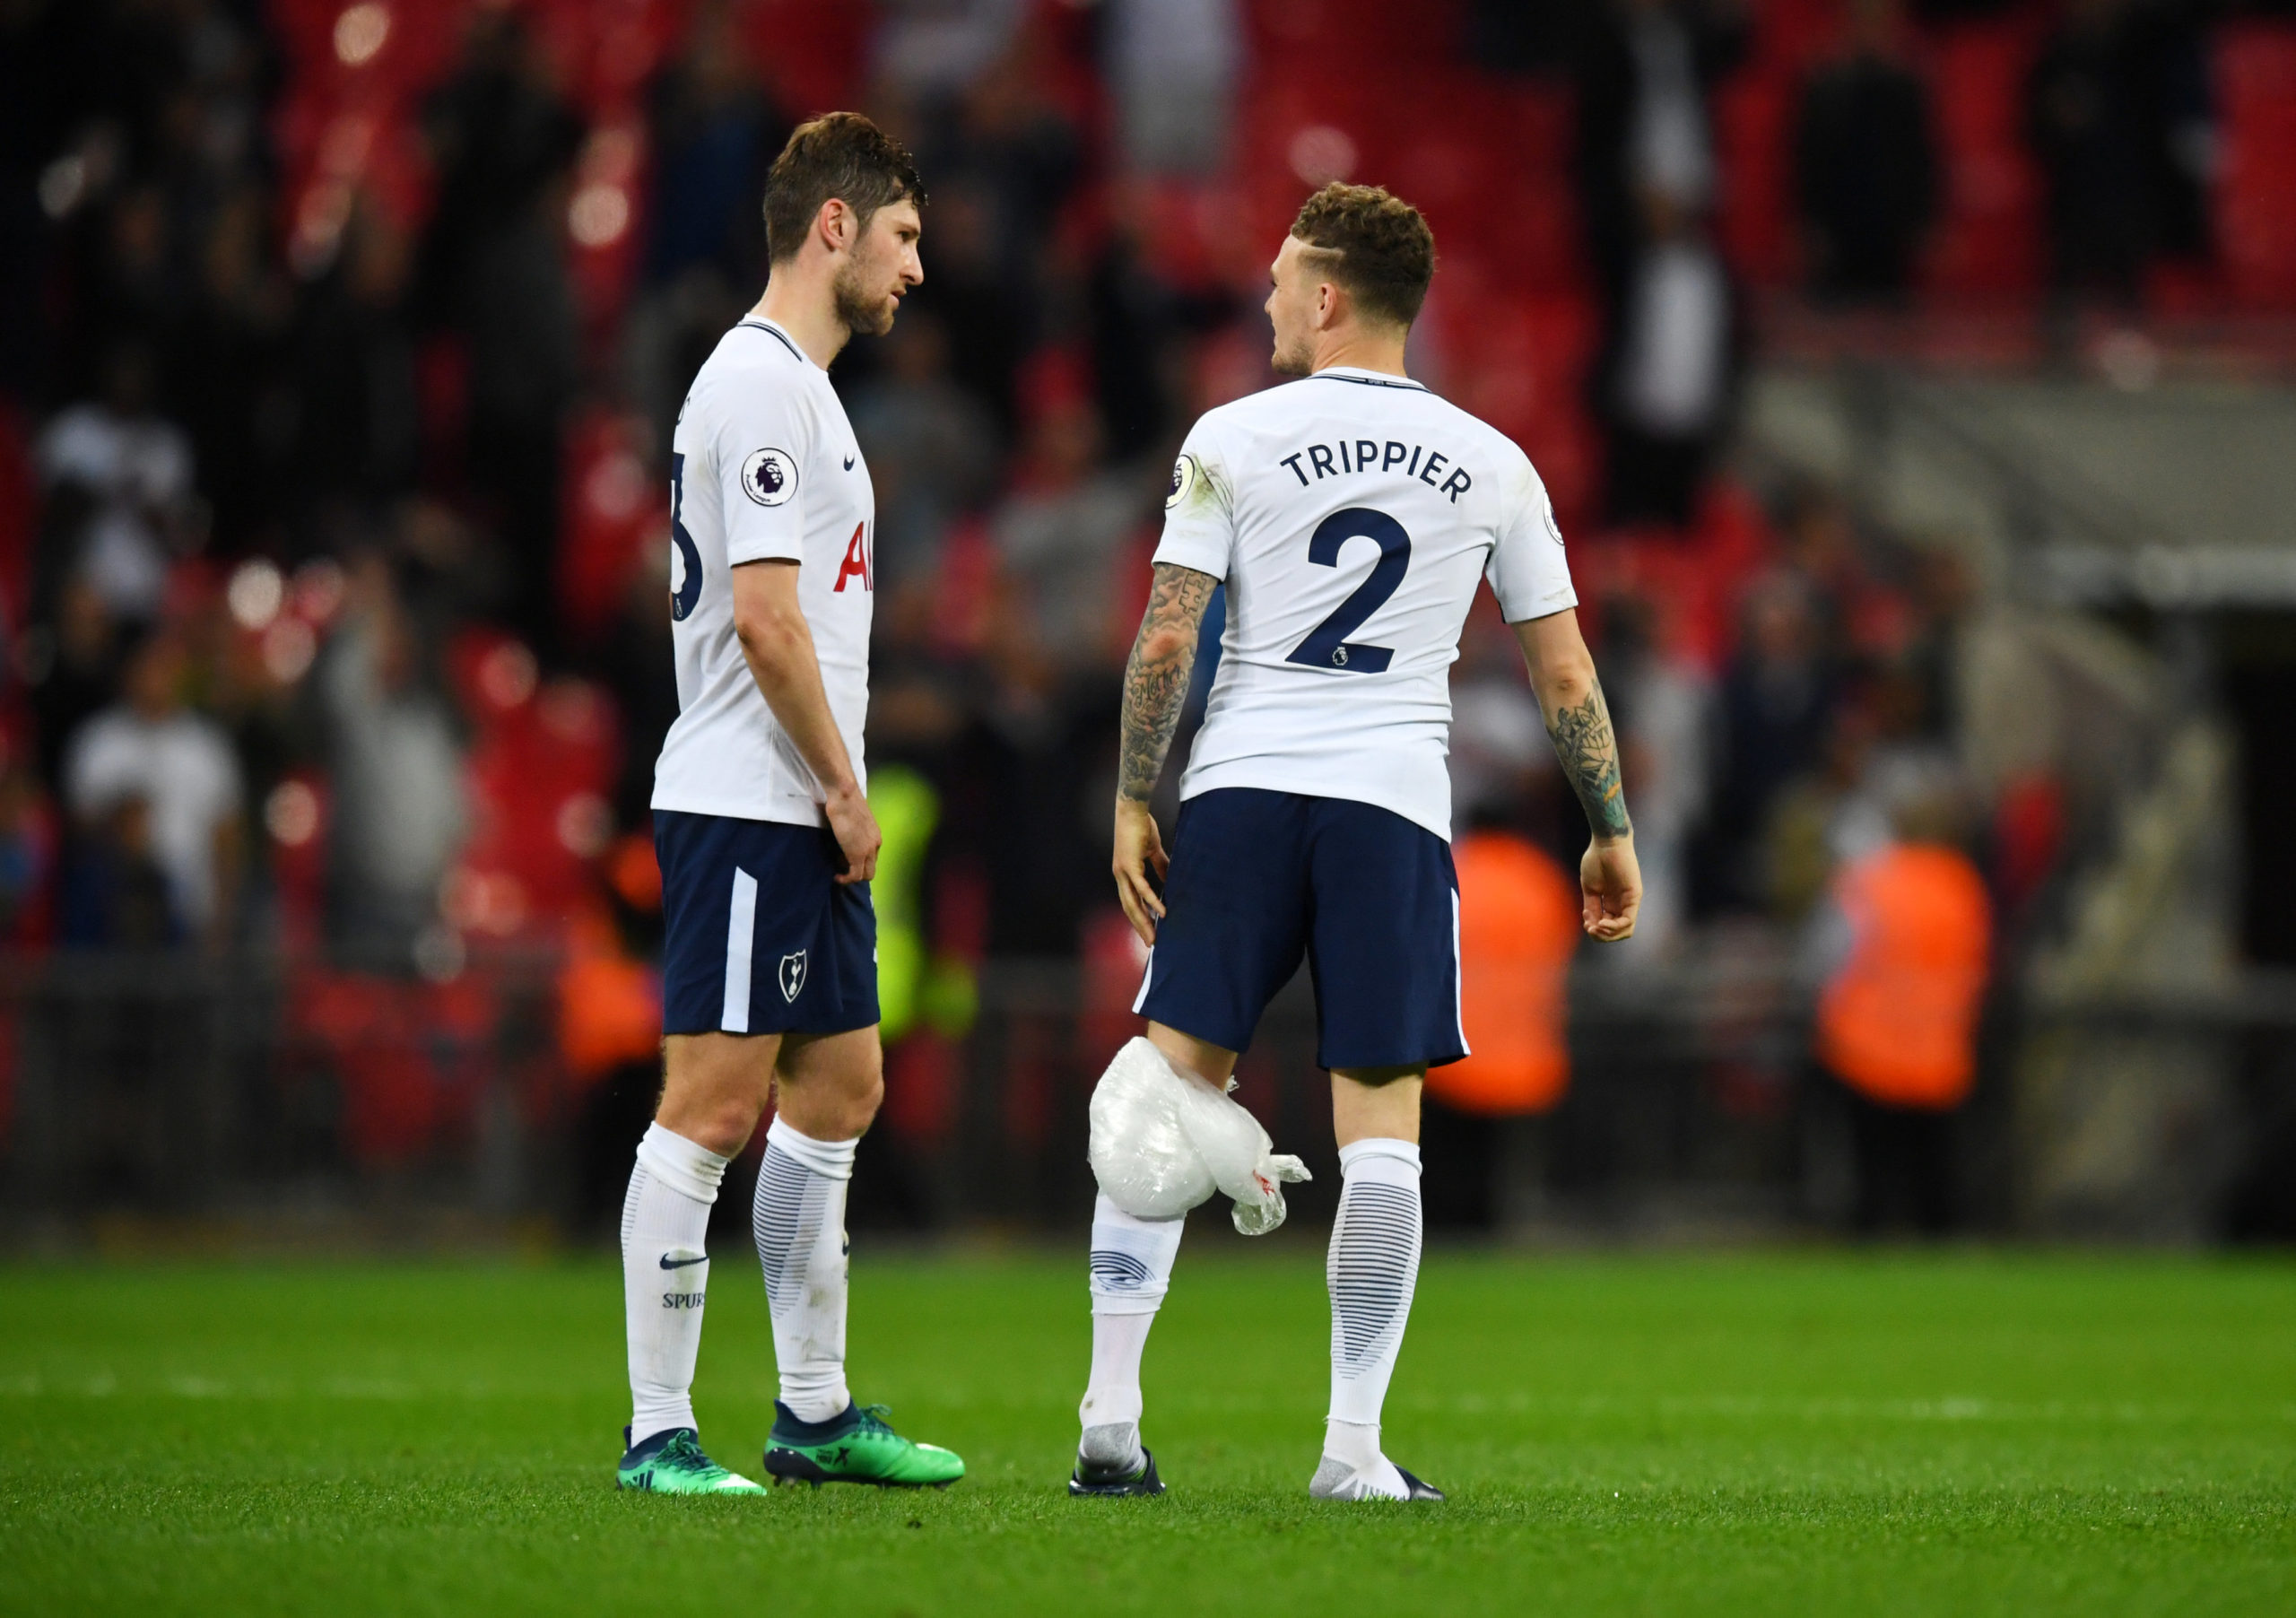 → Kieran Trippier, Ben Davies and which other player all supplied seven assists in 2017/18, the highest total among FPL defenders?